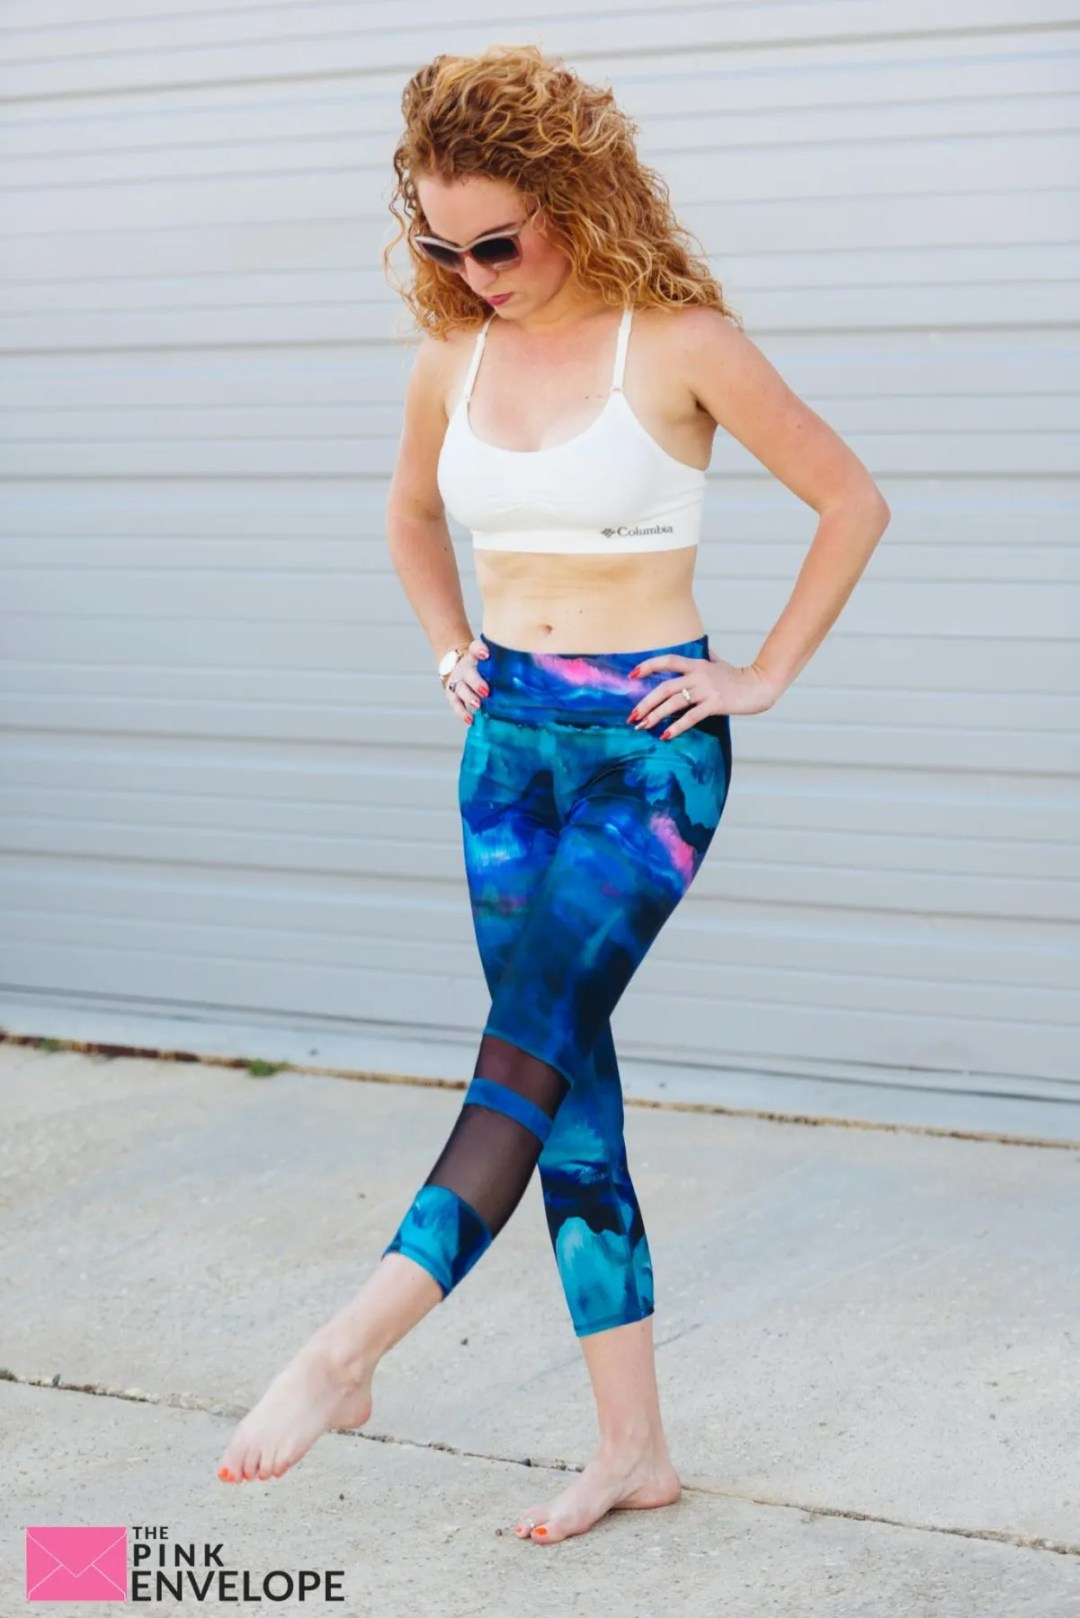 Yoga Clothes Sent to Your Door - YogaClub